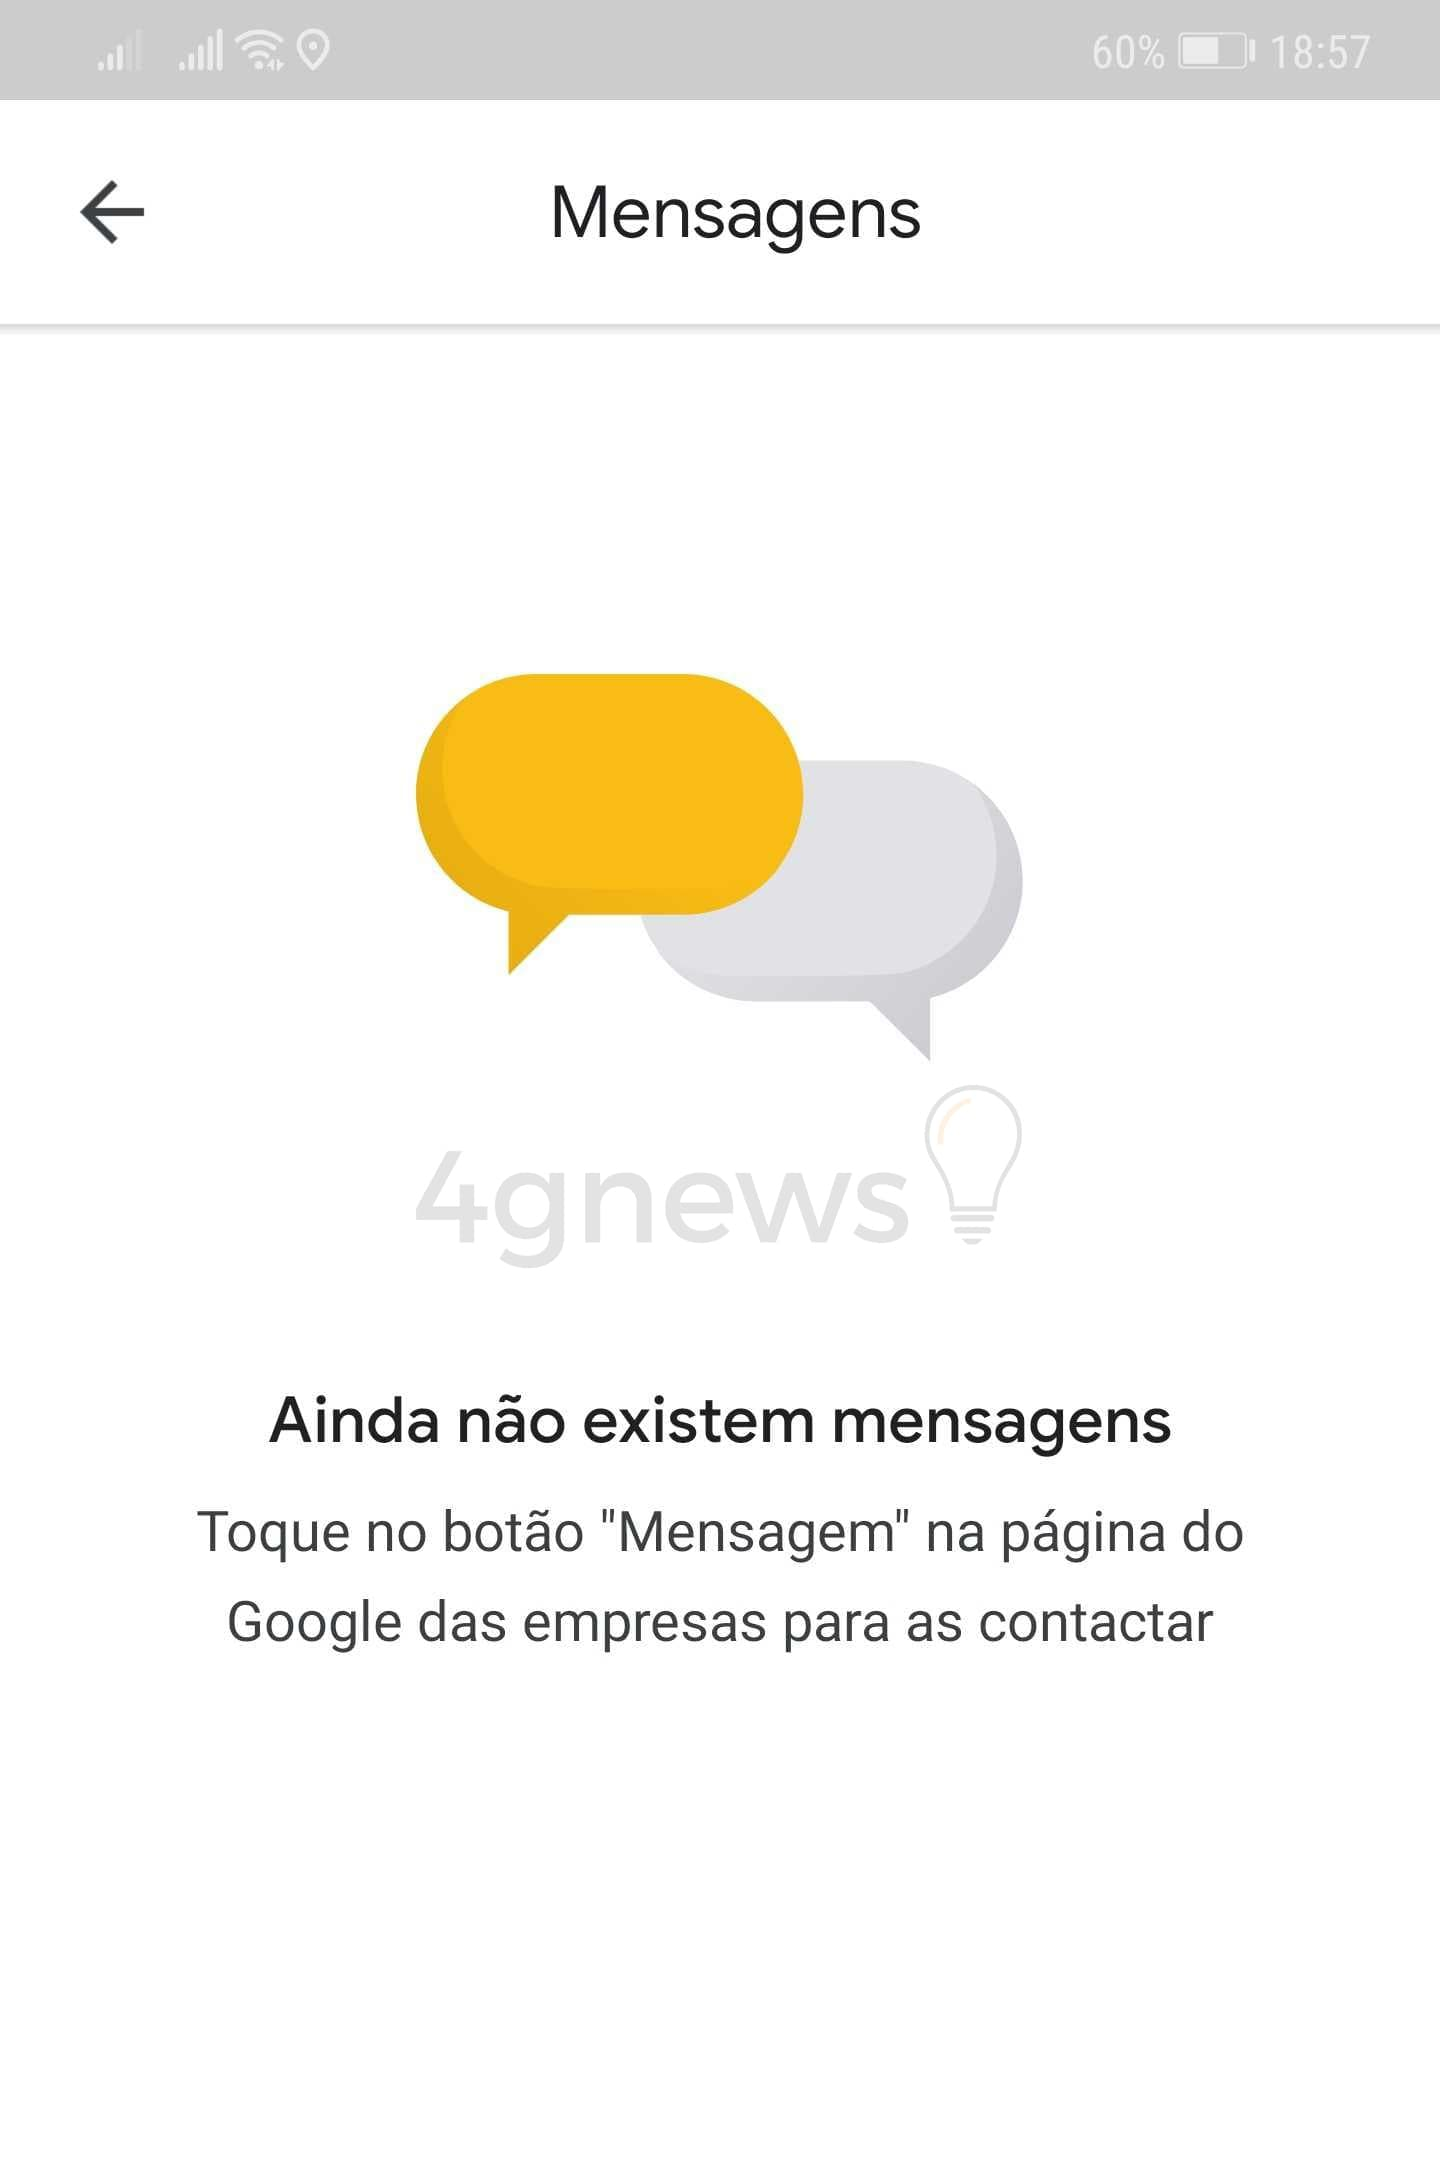 google-maps-android-4gnews